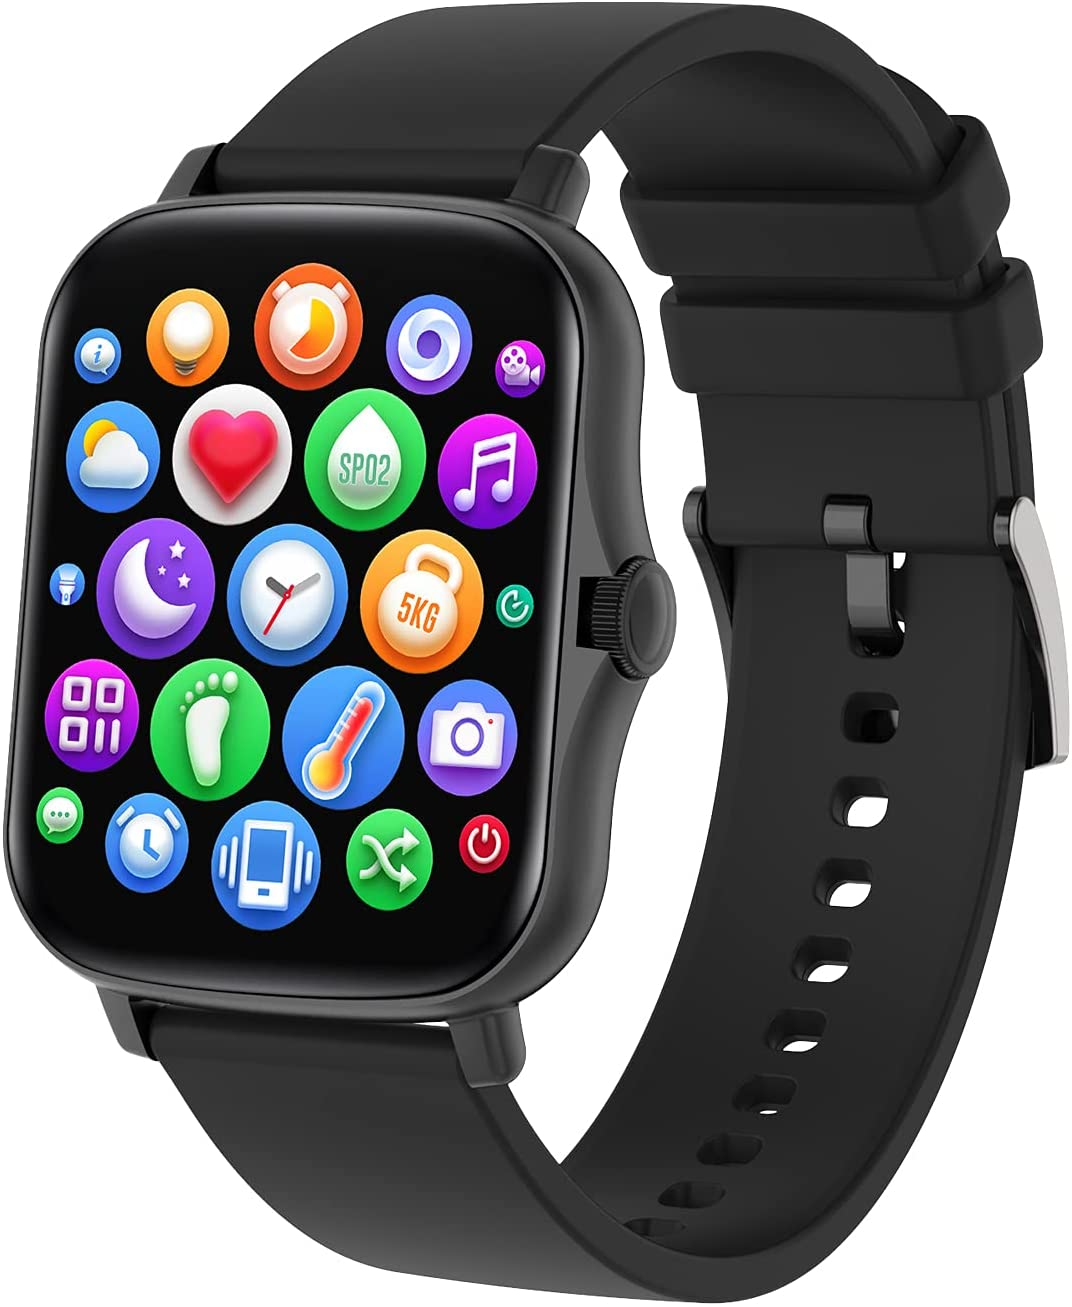 COLMI 1.69 inch Smart Watch for Men Women, 2021 New Upgraded Smartwatch P8plus Compatible with iPhone Andriod,Waterproof Fitness Tracker with Heart Rate Blood Pressure and SpO2 Monitor (Black)